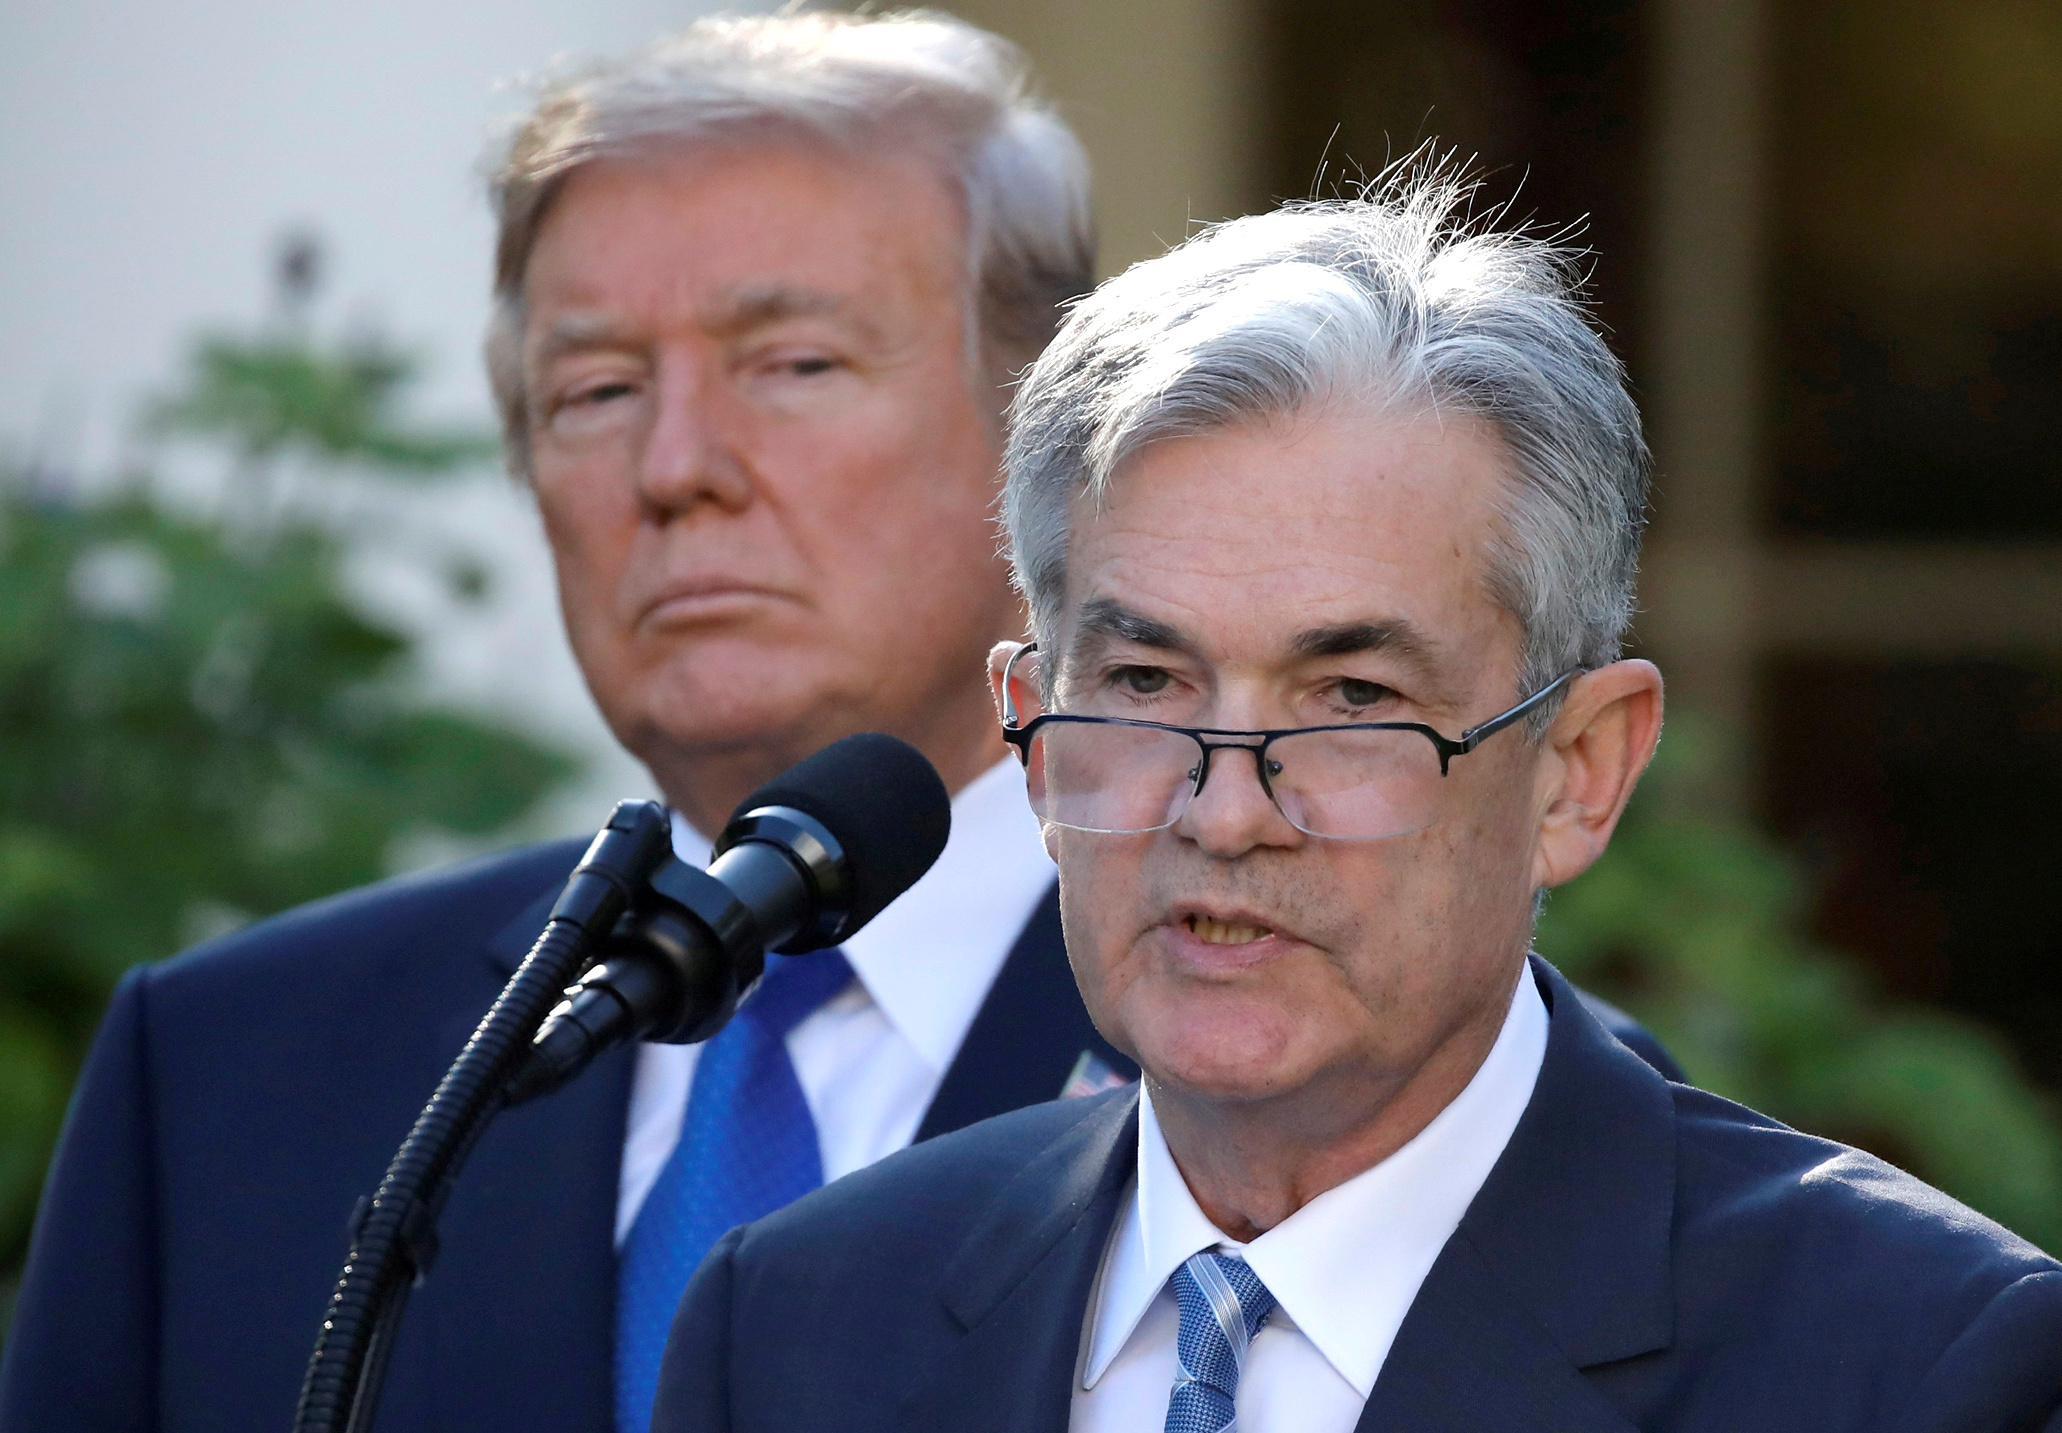 FILE PHOTO: U.S. President Donald Trump looks on as Jerome Powell, his nominee to become chairman of the U.S. Federal Reserve, speaks at the White House in Washington, U.S., November 2, 2017. REUTERS/Carlos Barria/File Photo